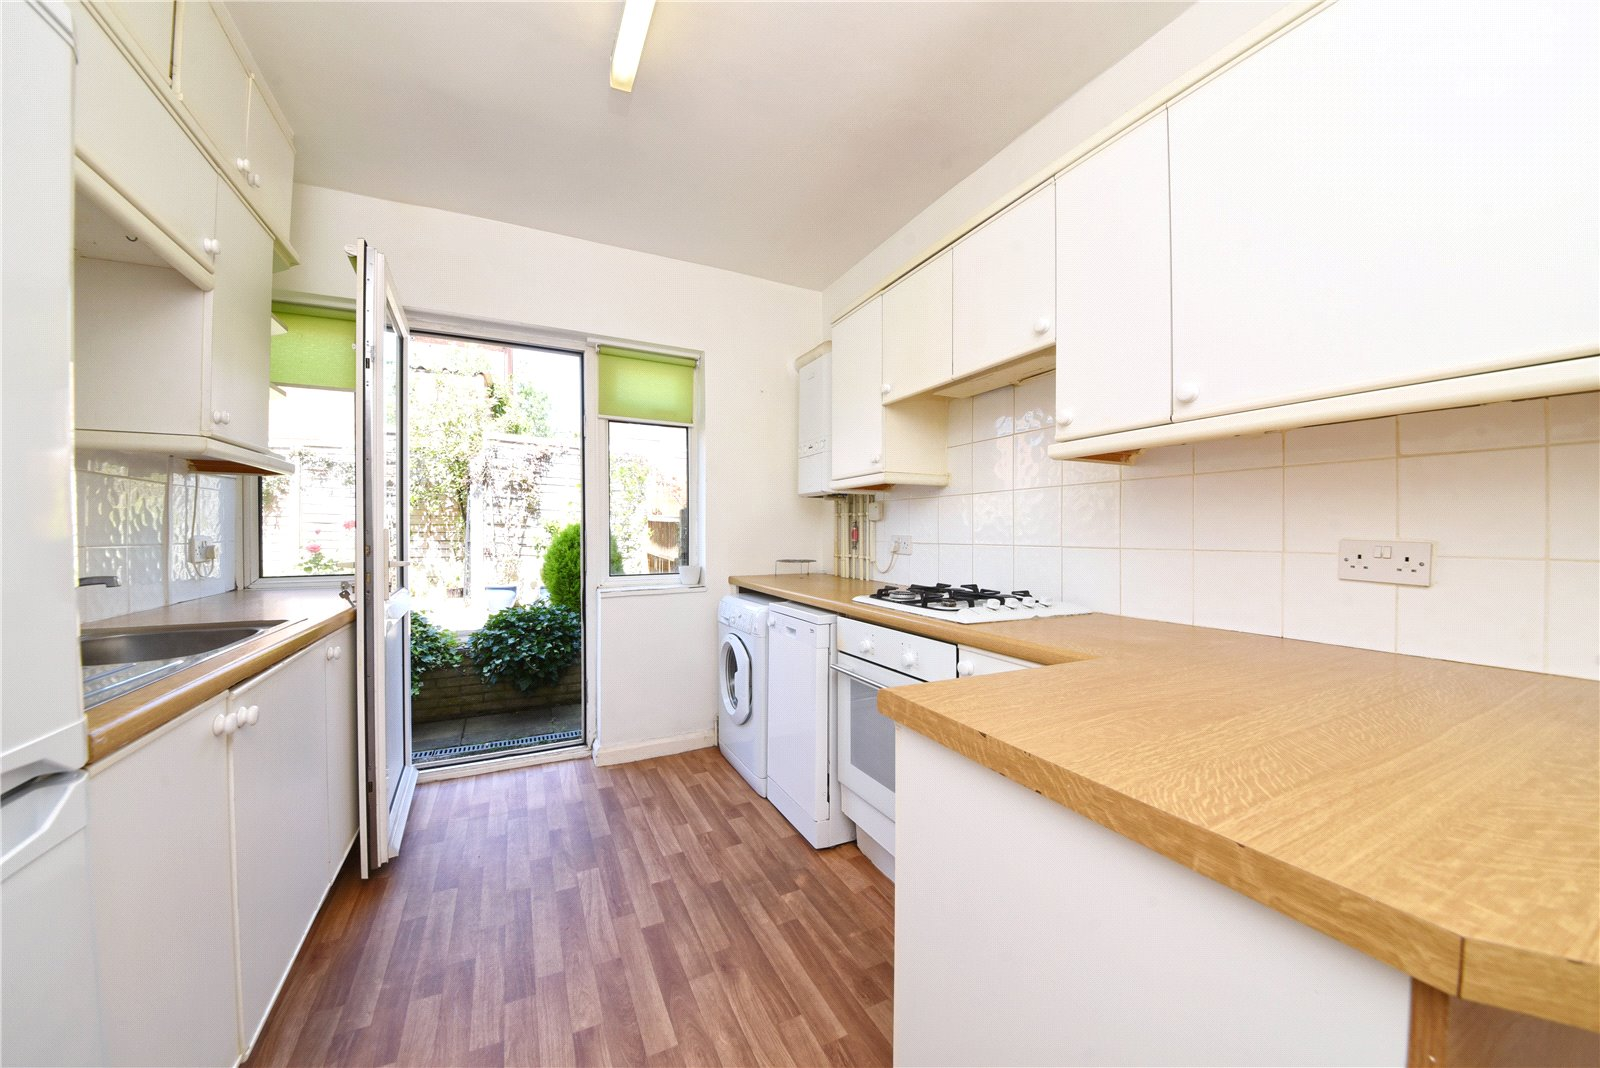 2 bed apartment for sale in Friern Park, North Finchley, N12